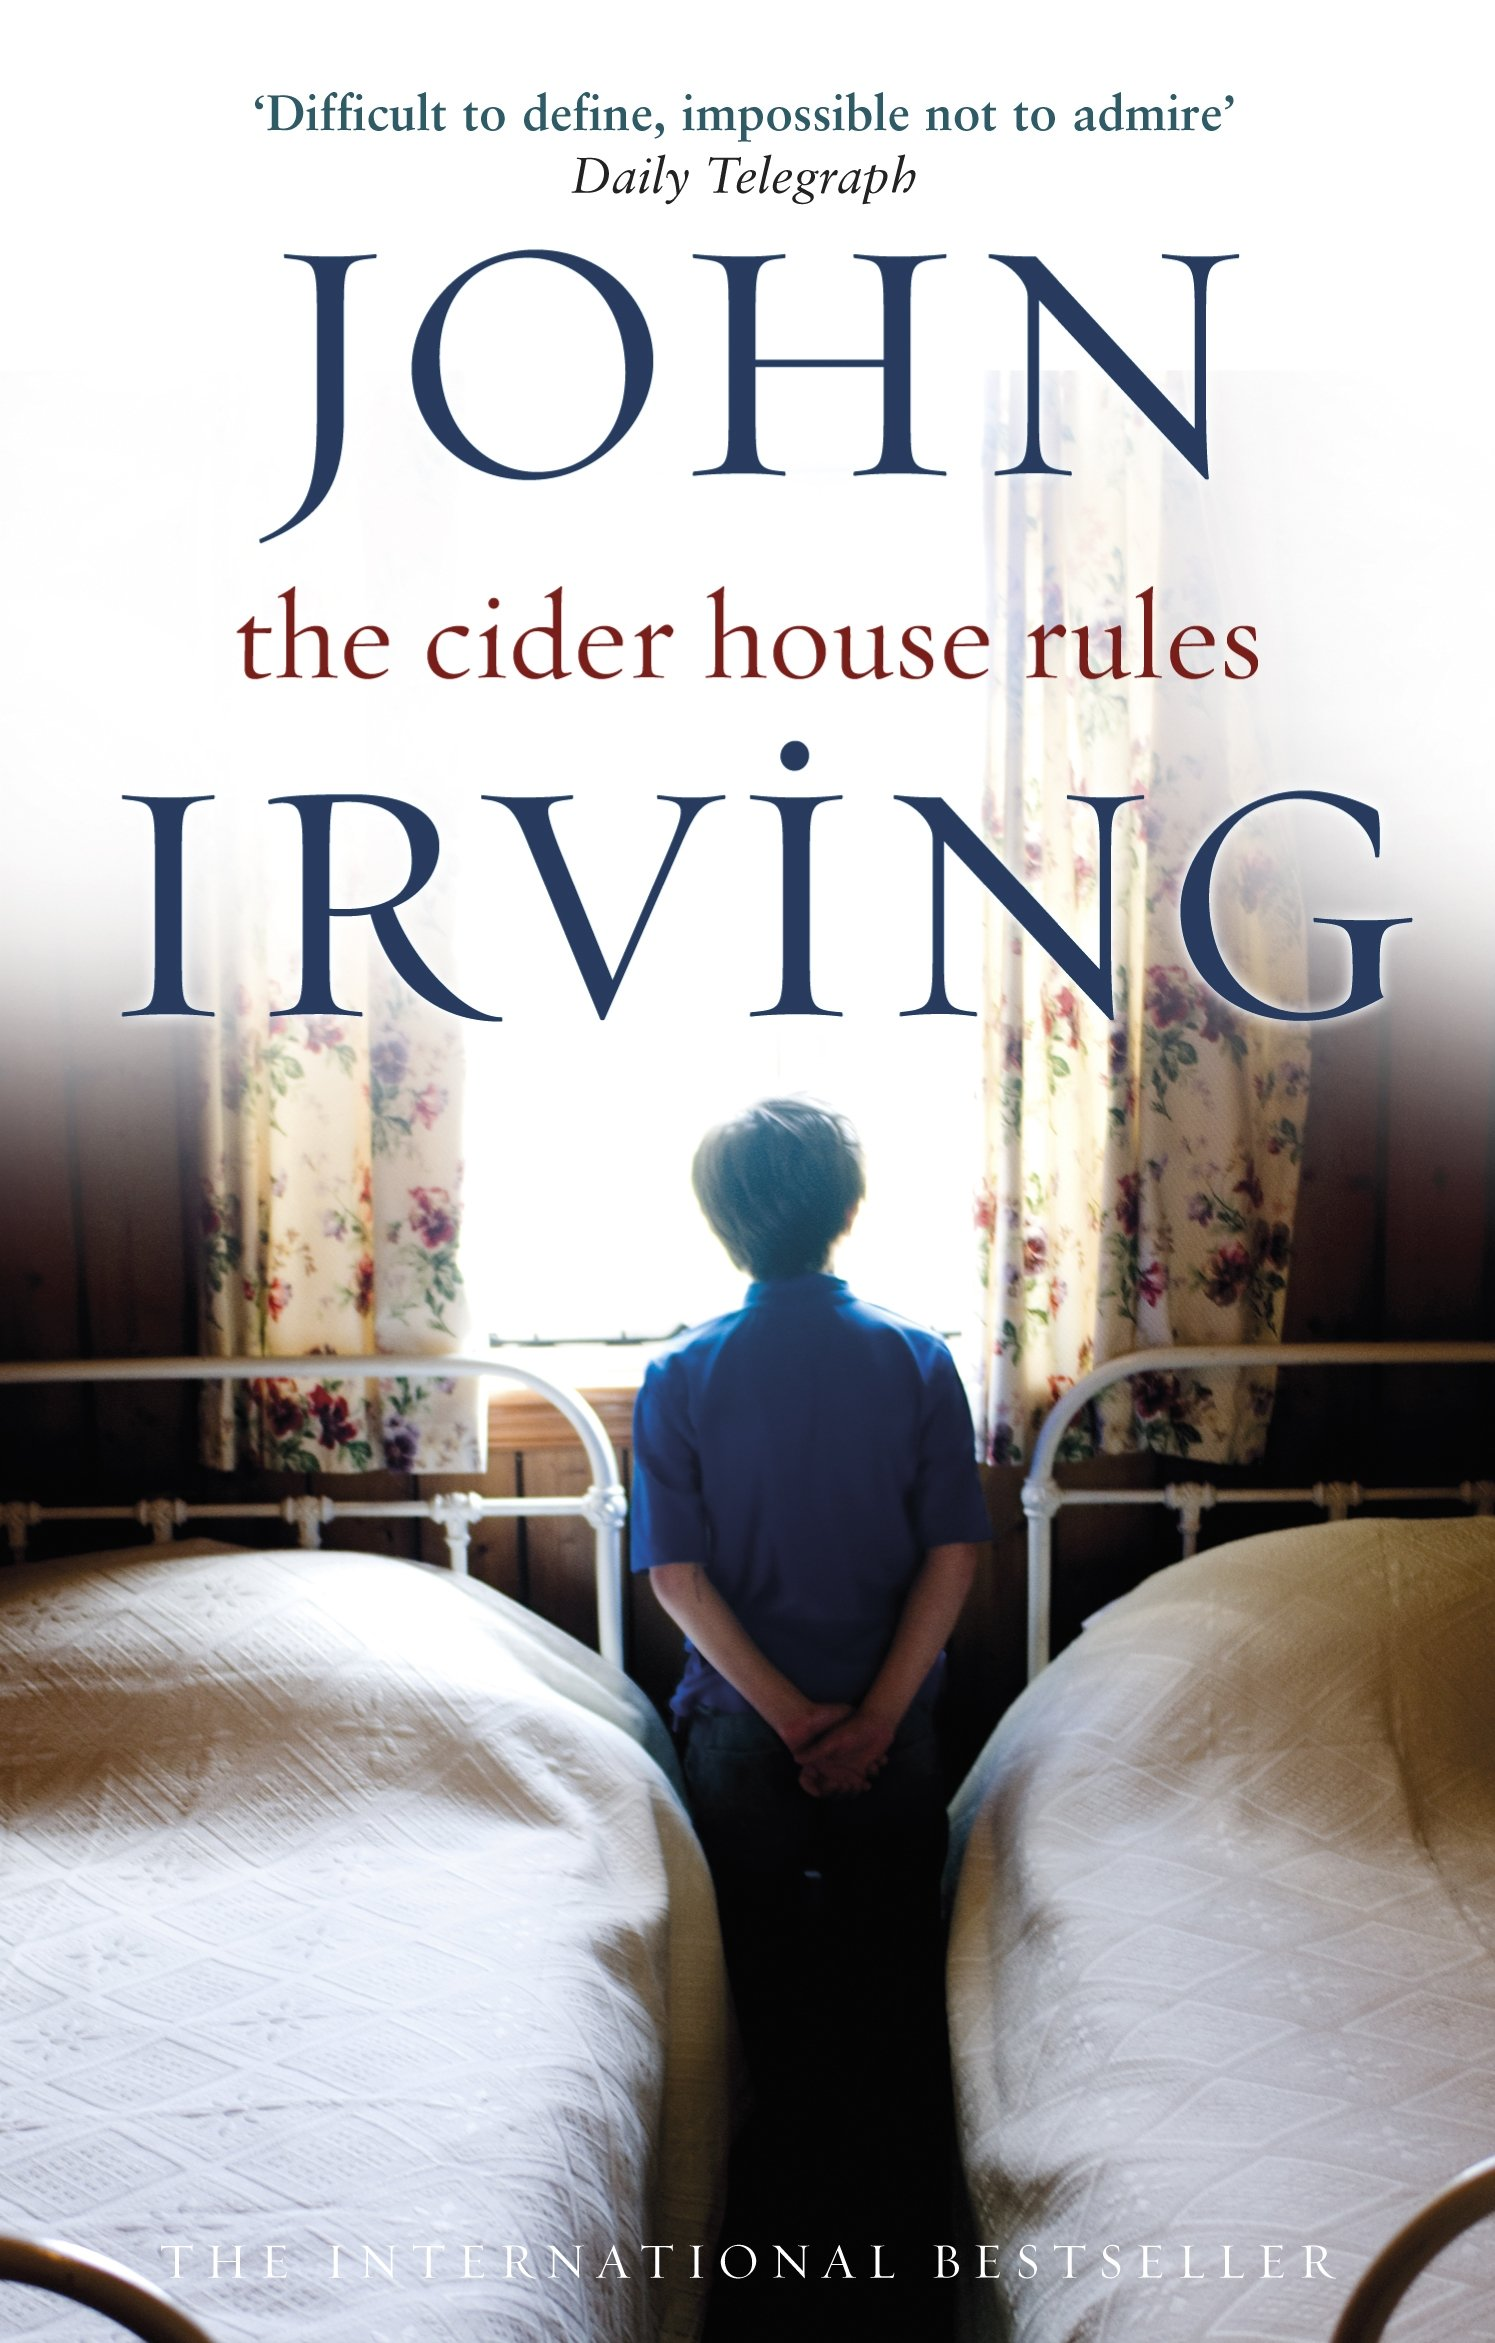 The Cider House Rules (Black Swan): Amazon.es: John Irving: Libros en idiomas extranjeros